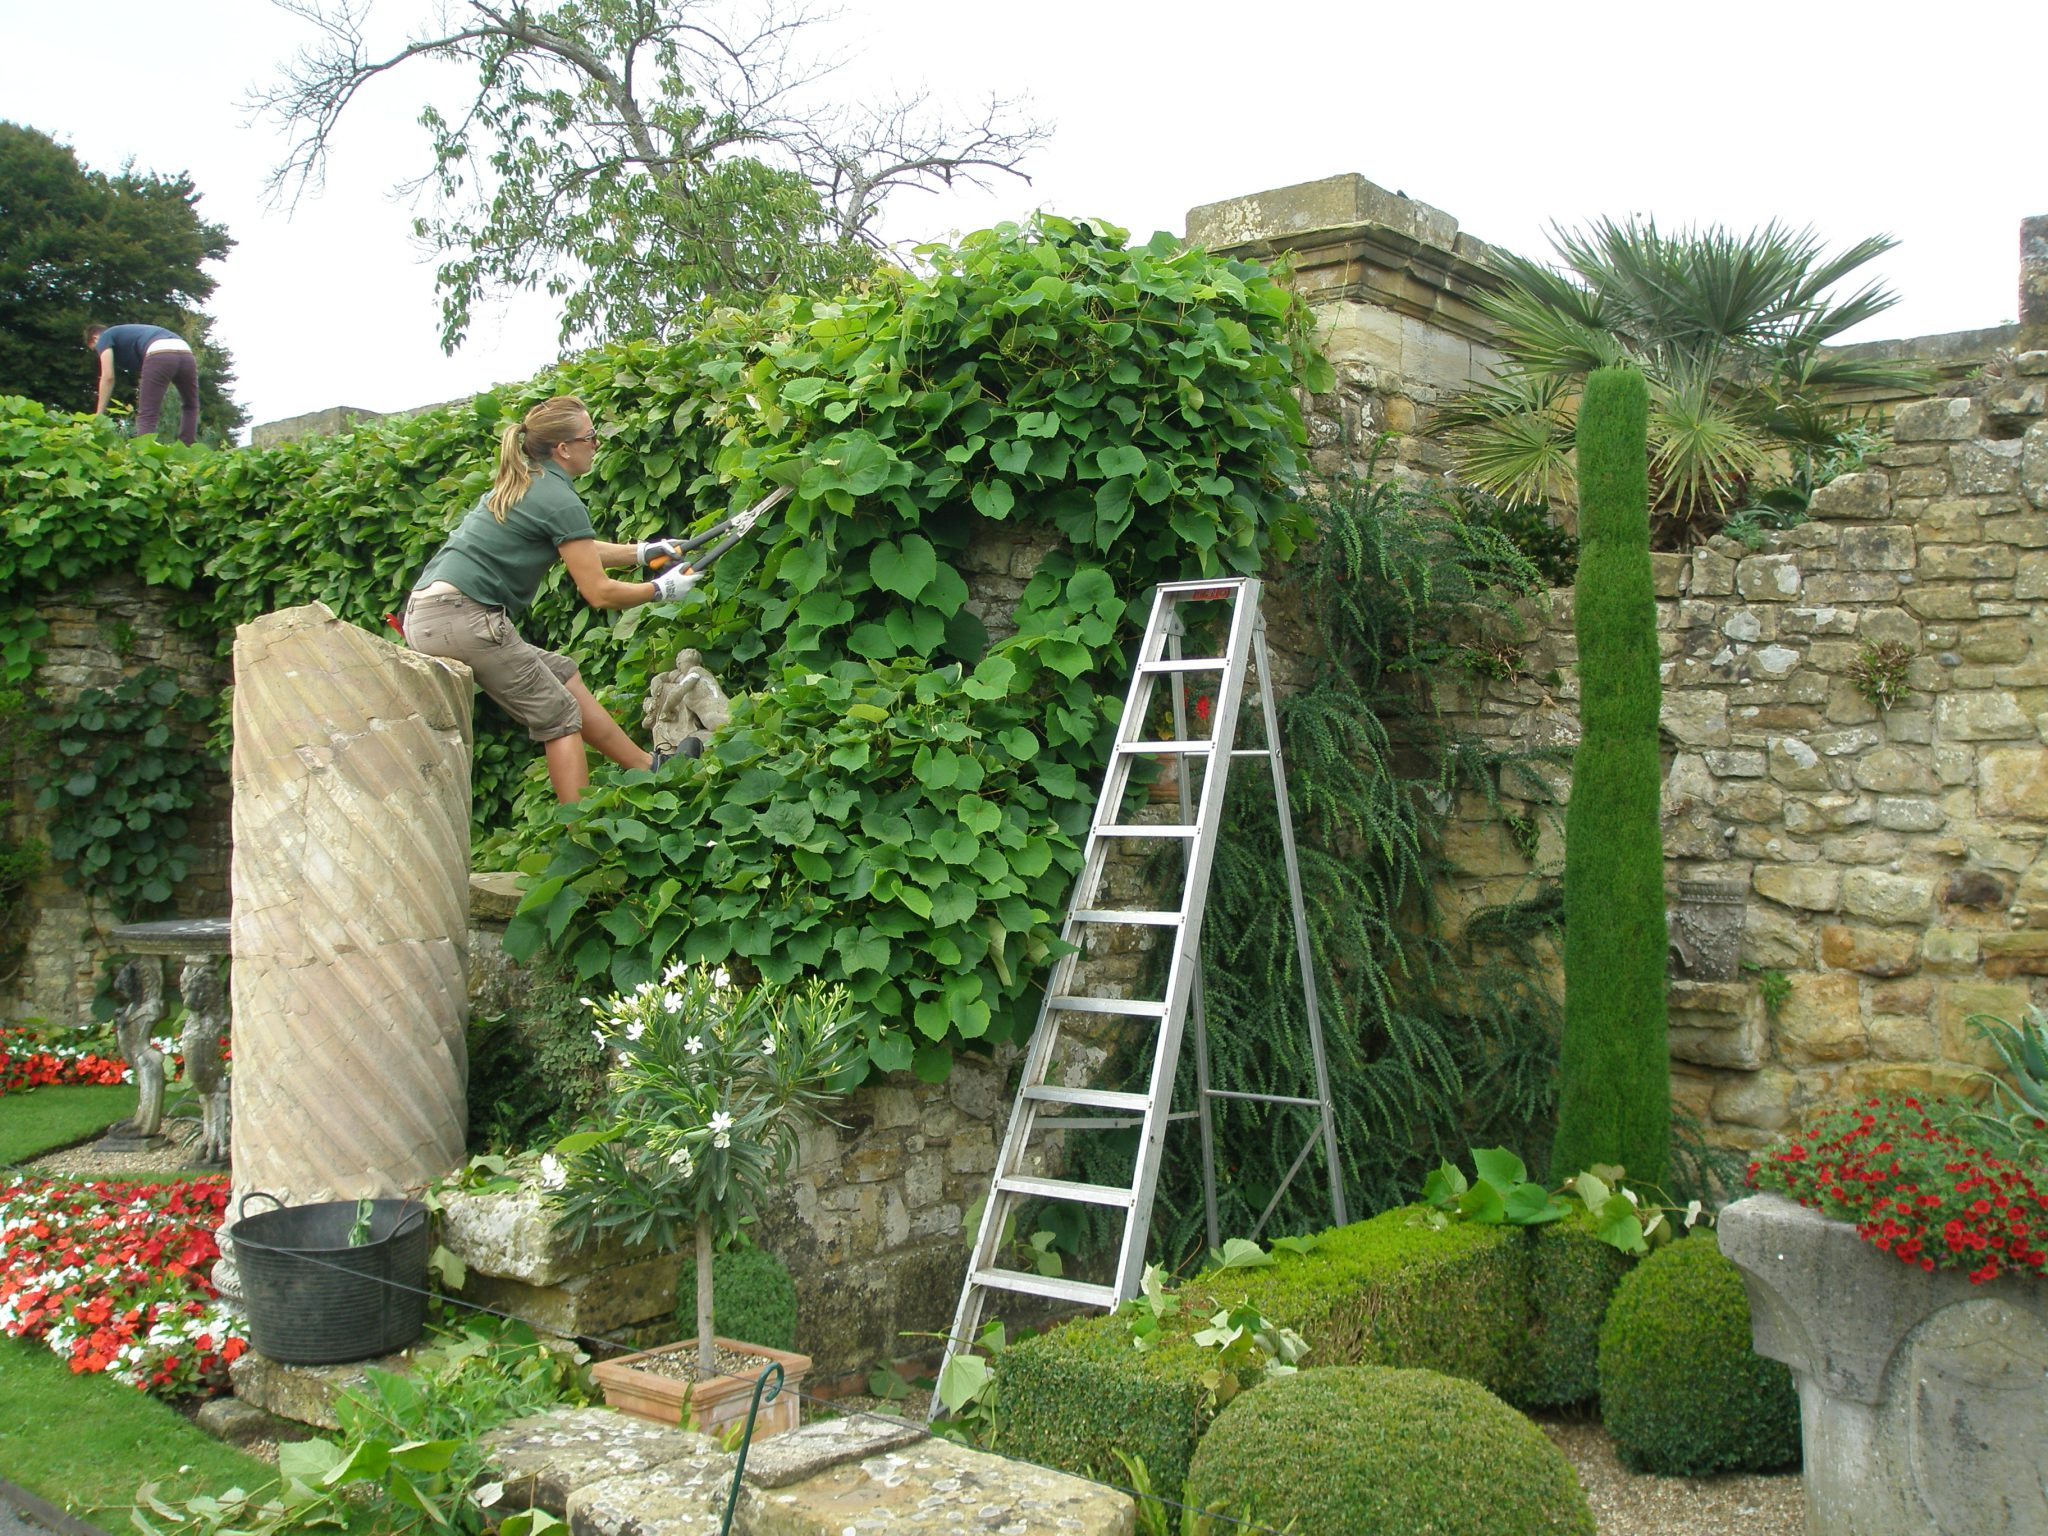 A Gardener's work is never done: maintaining a small stretch of The Pompeiian Wall borders.